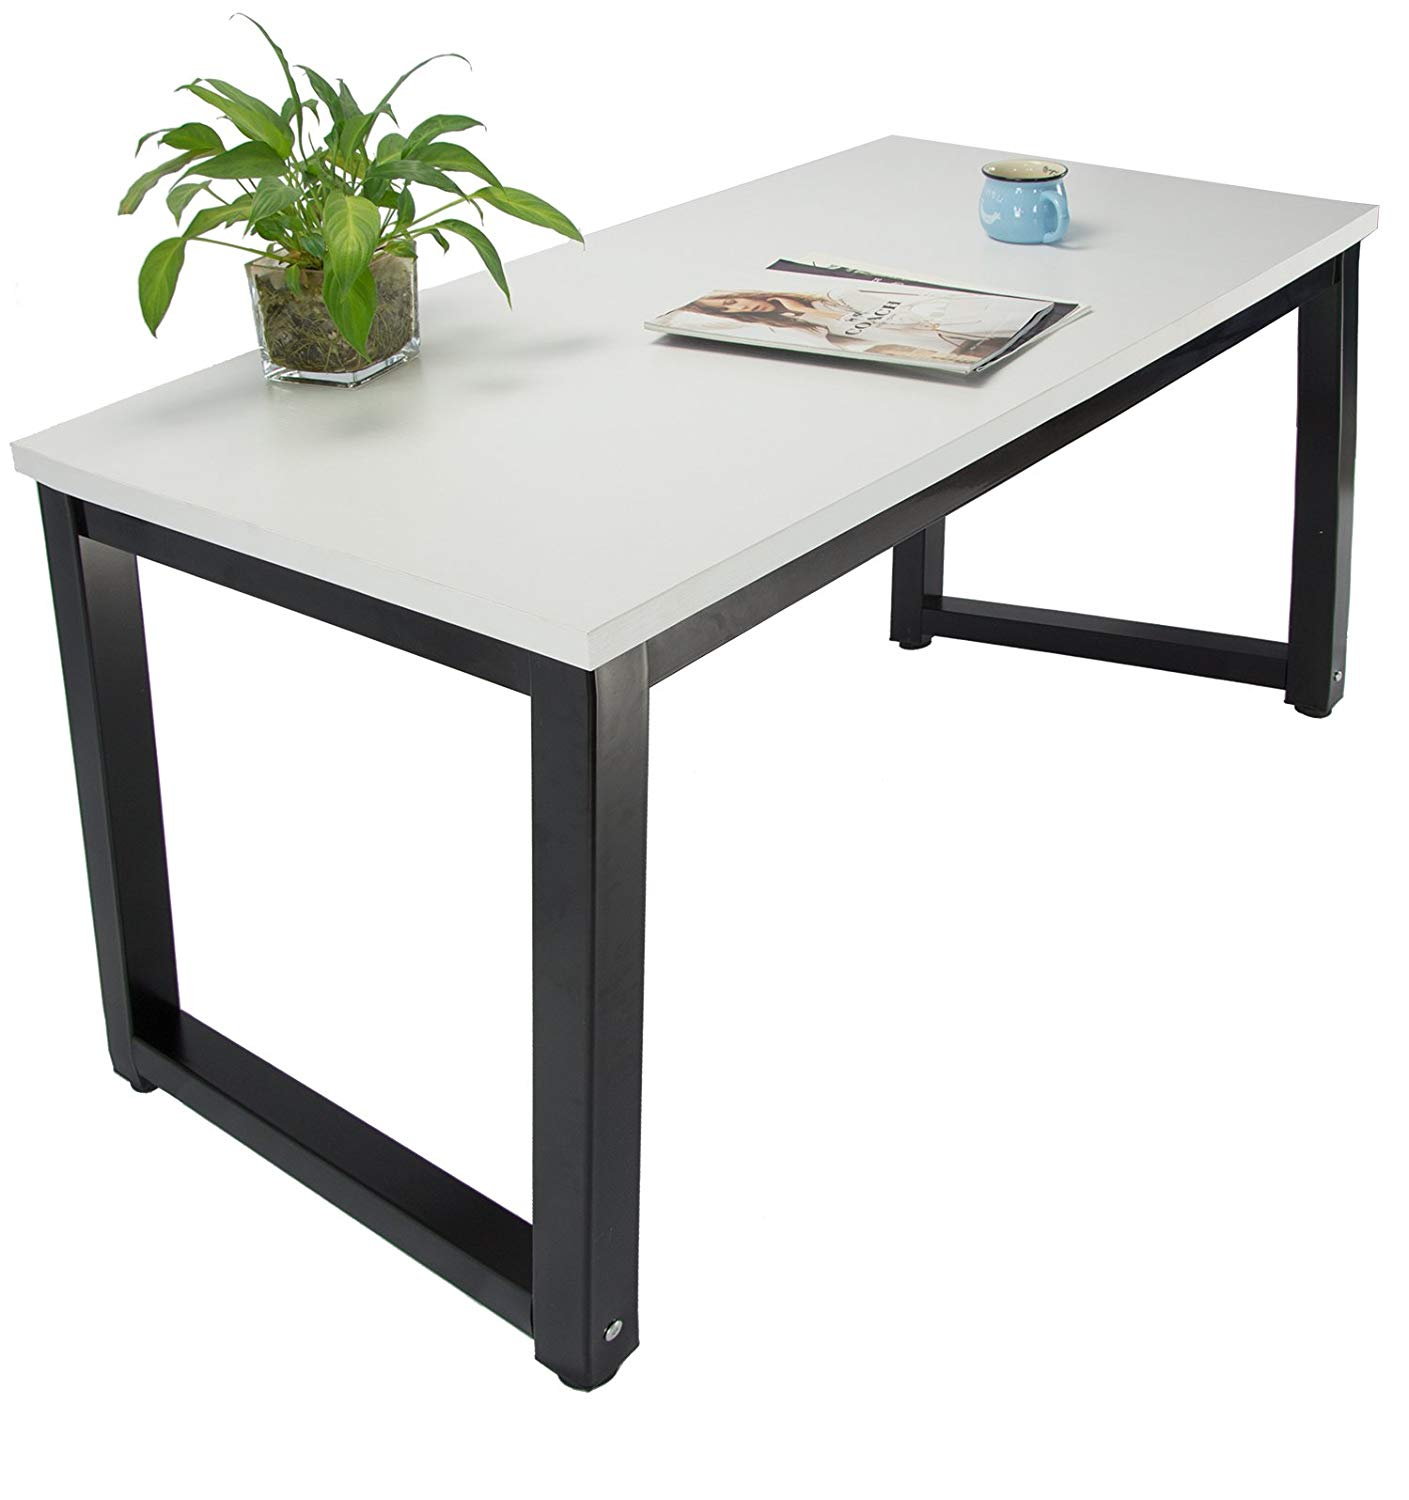 Get Quotations · Office Computer Desk Laminated Wooden Particleboard Table  And Black Powder Coated Steel Frame   Work Or